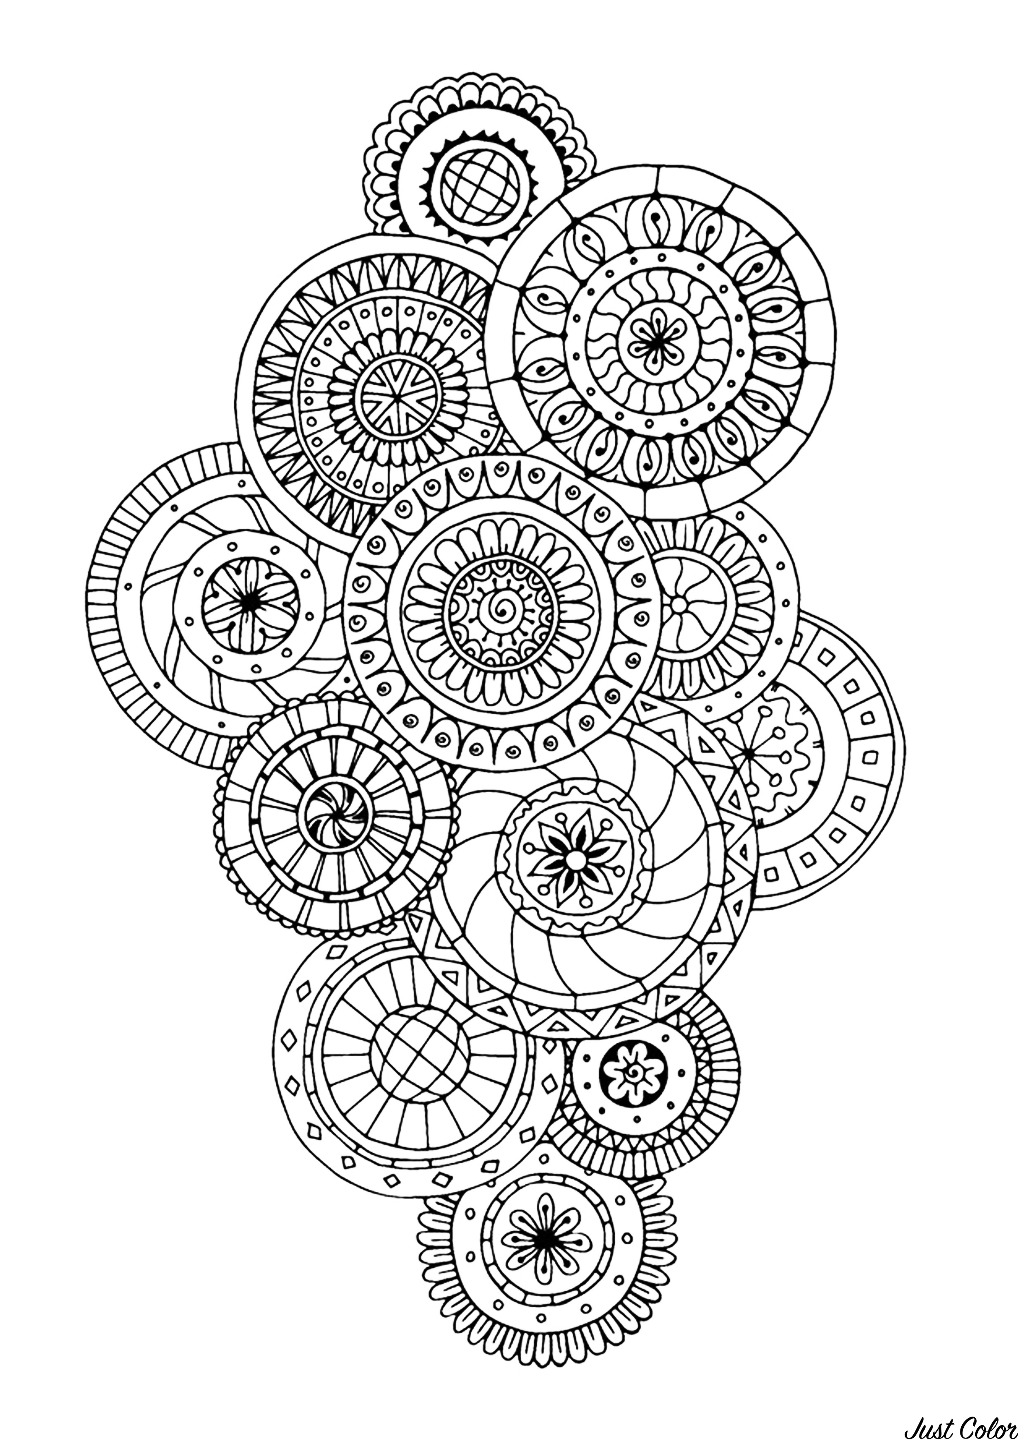 Zen & Anti-stress Coloring page : Abstract pattern inspired by flowers : n°5